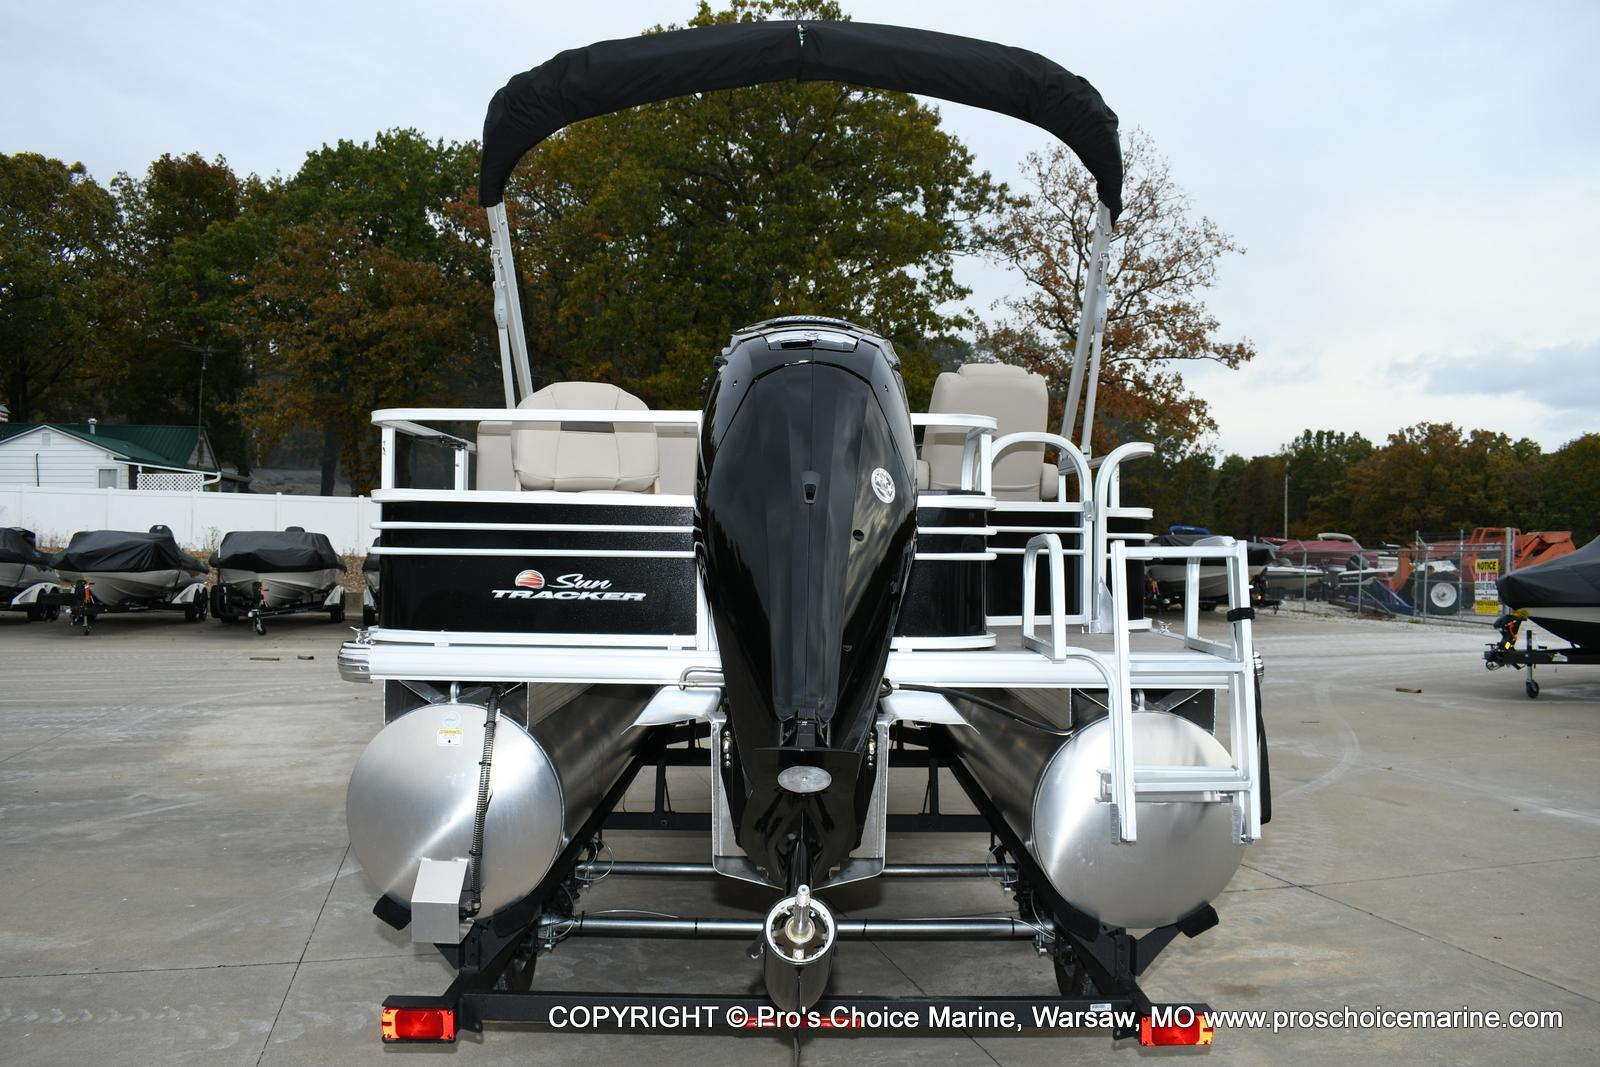 2020 Sun Tracker boat for sale, model of the boat is Fishin' Barge 20 DLX & Image # 38 of 50